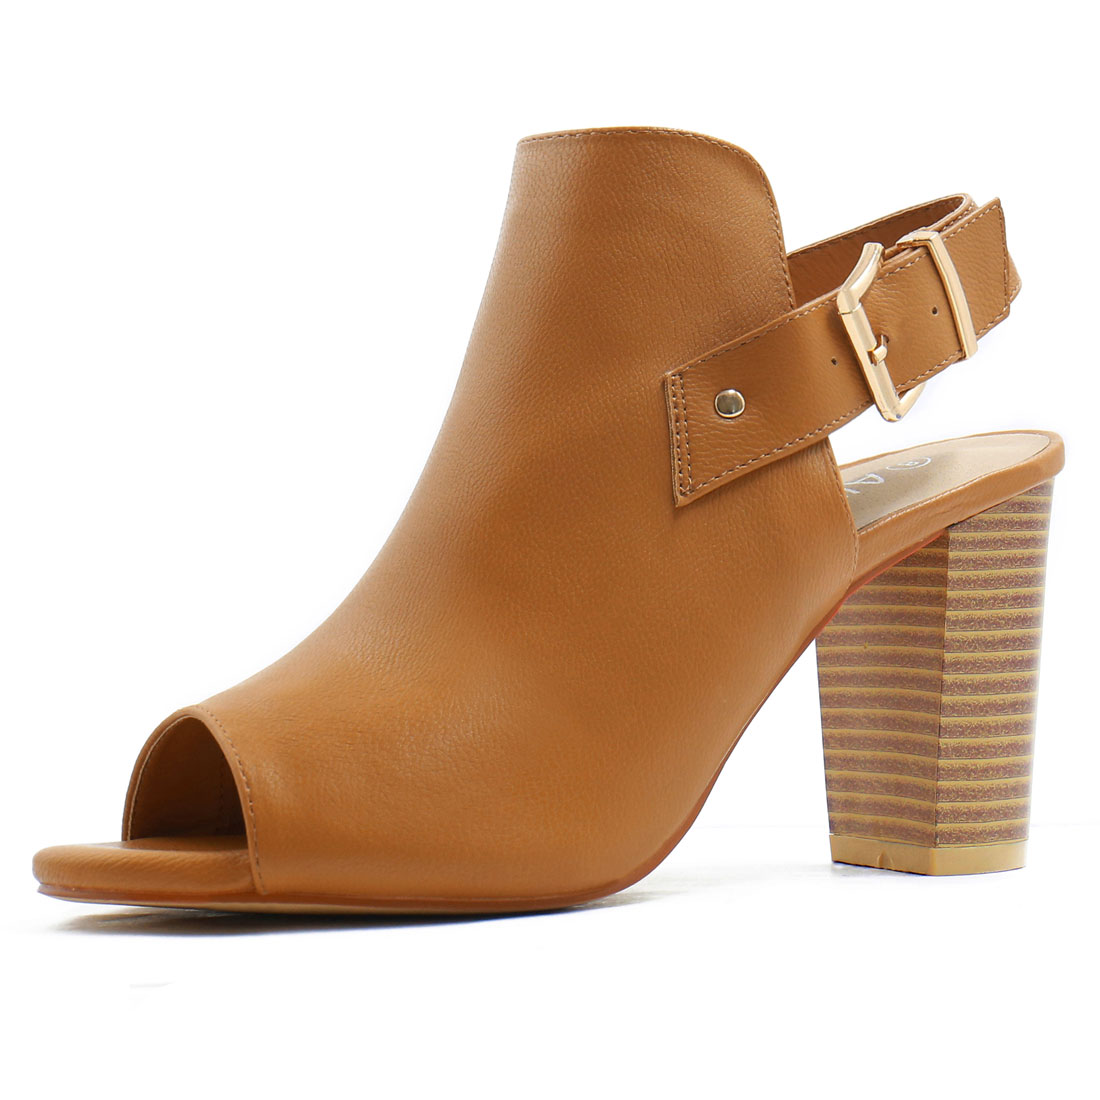 Women Peep Toe Slip On Stacked Heel Slingback Sandals Camel US 6.5